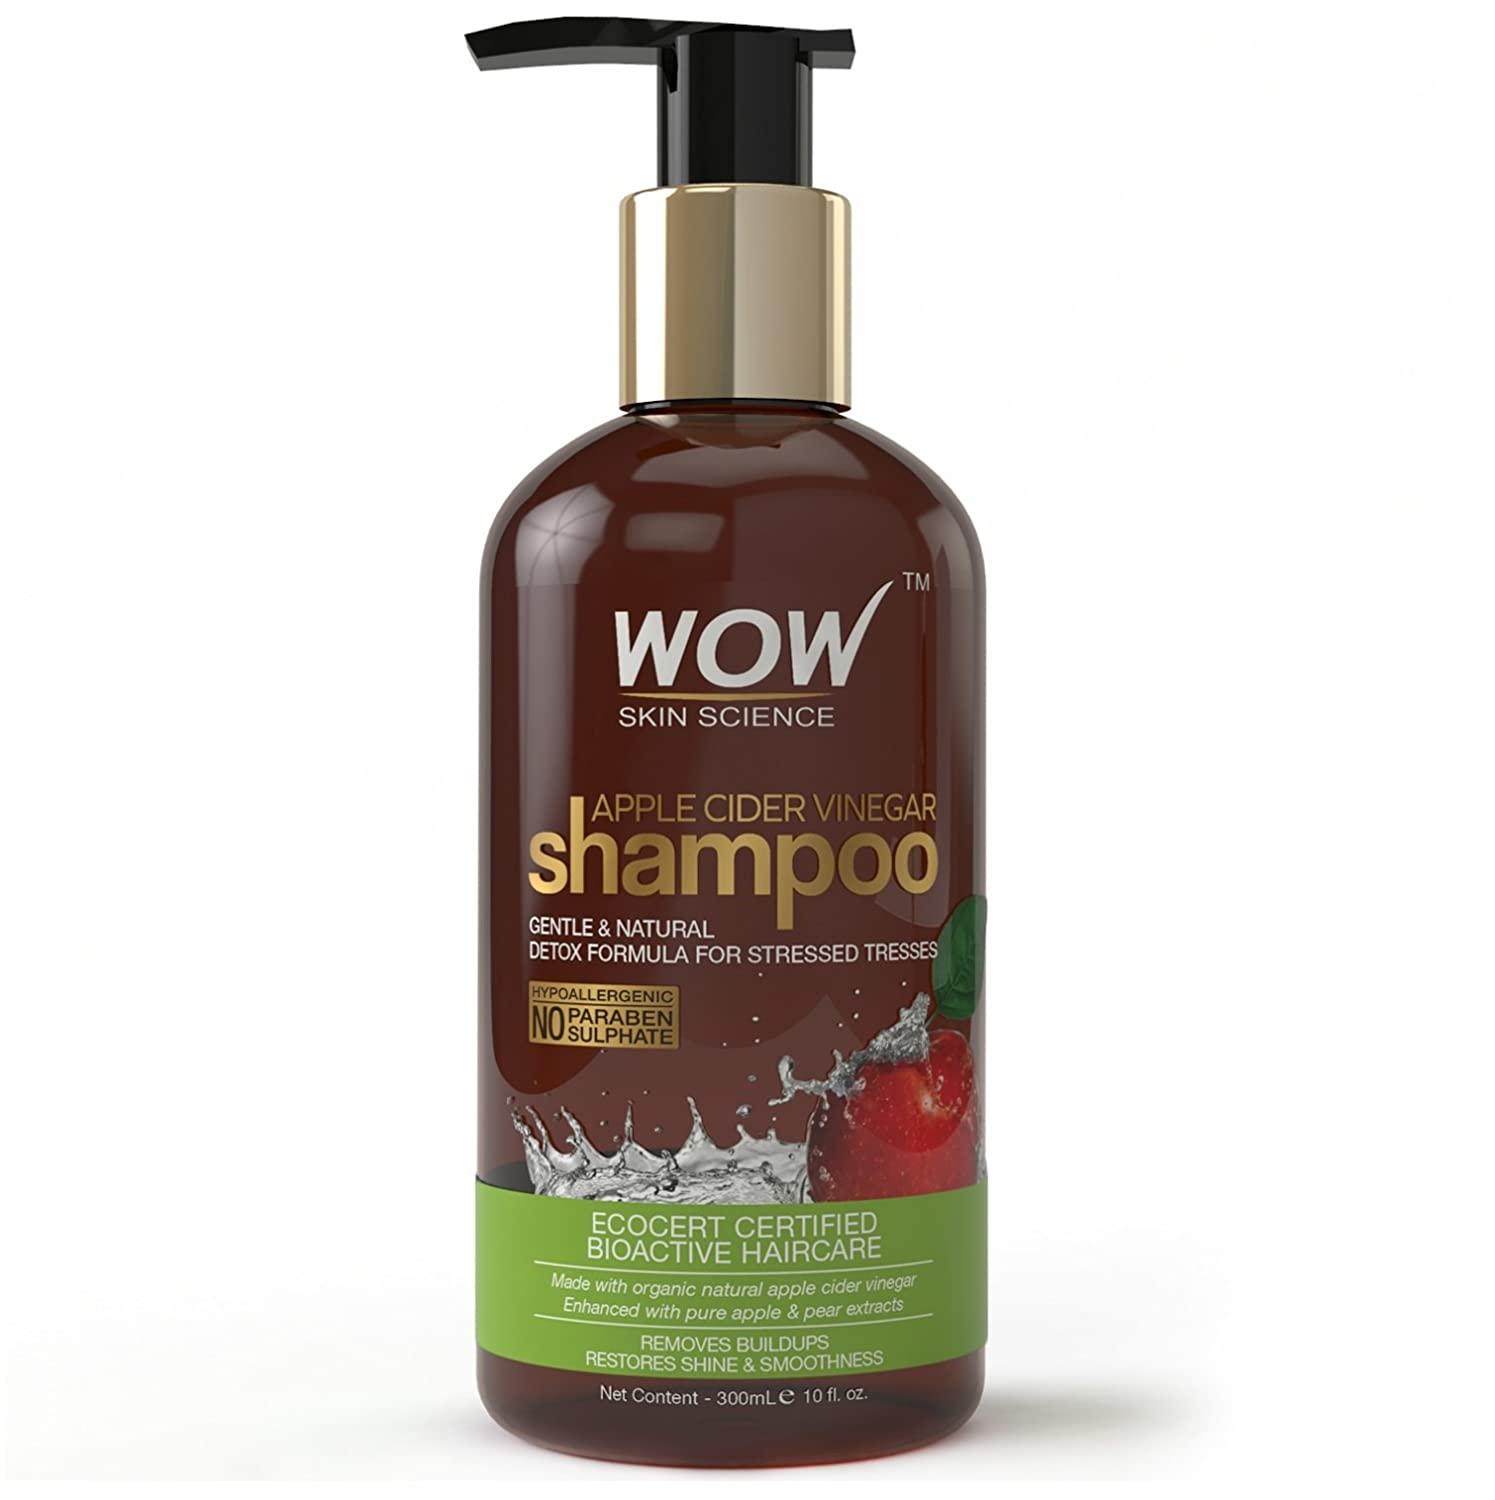 WOW Apple Cider Vinegar Shampoo - 300 mL